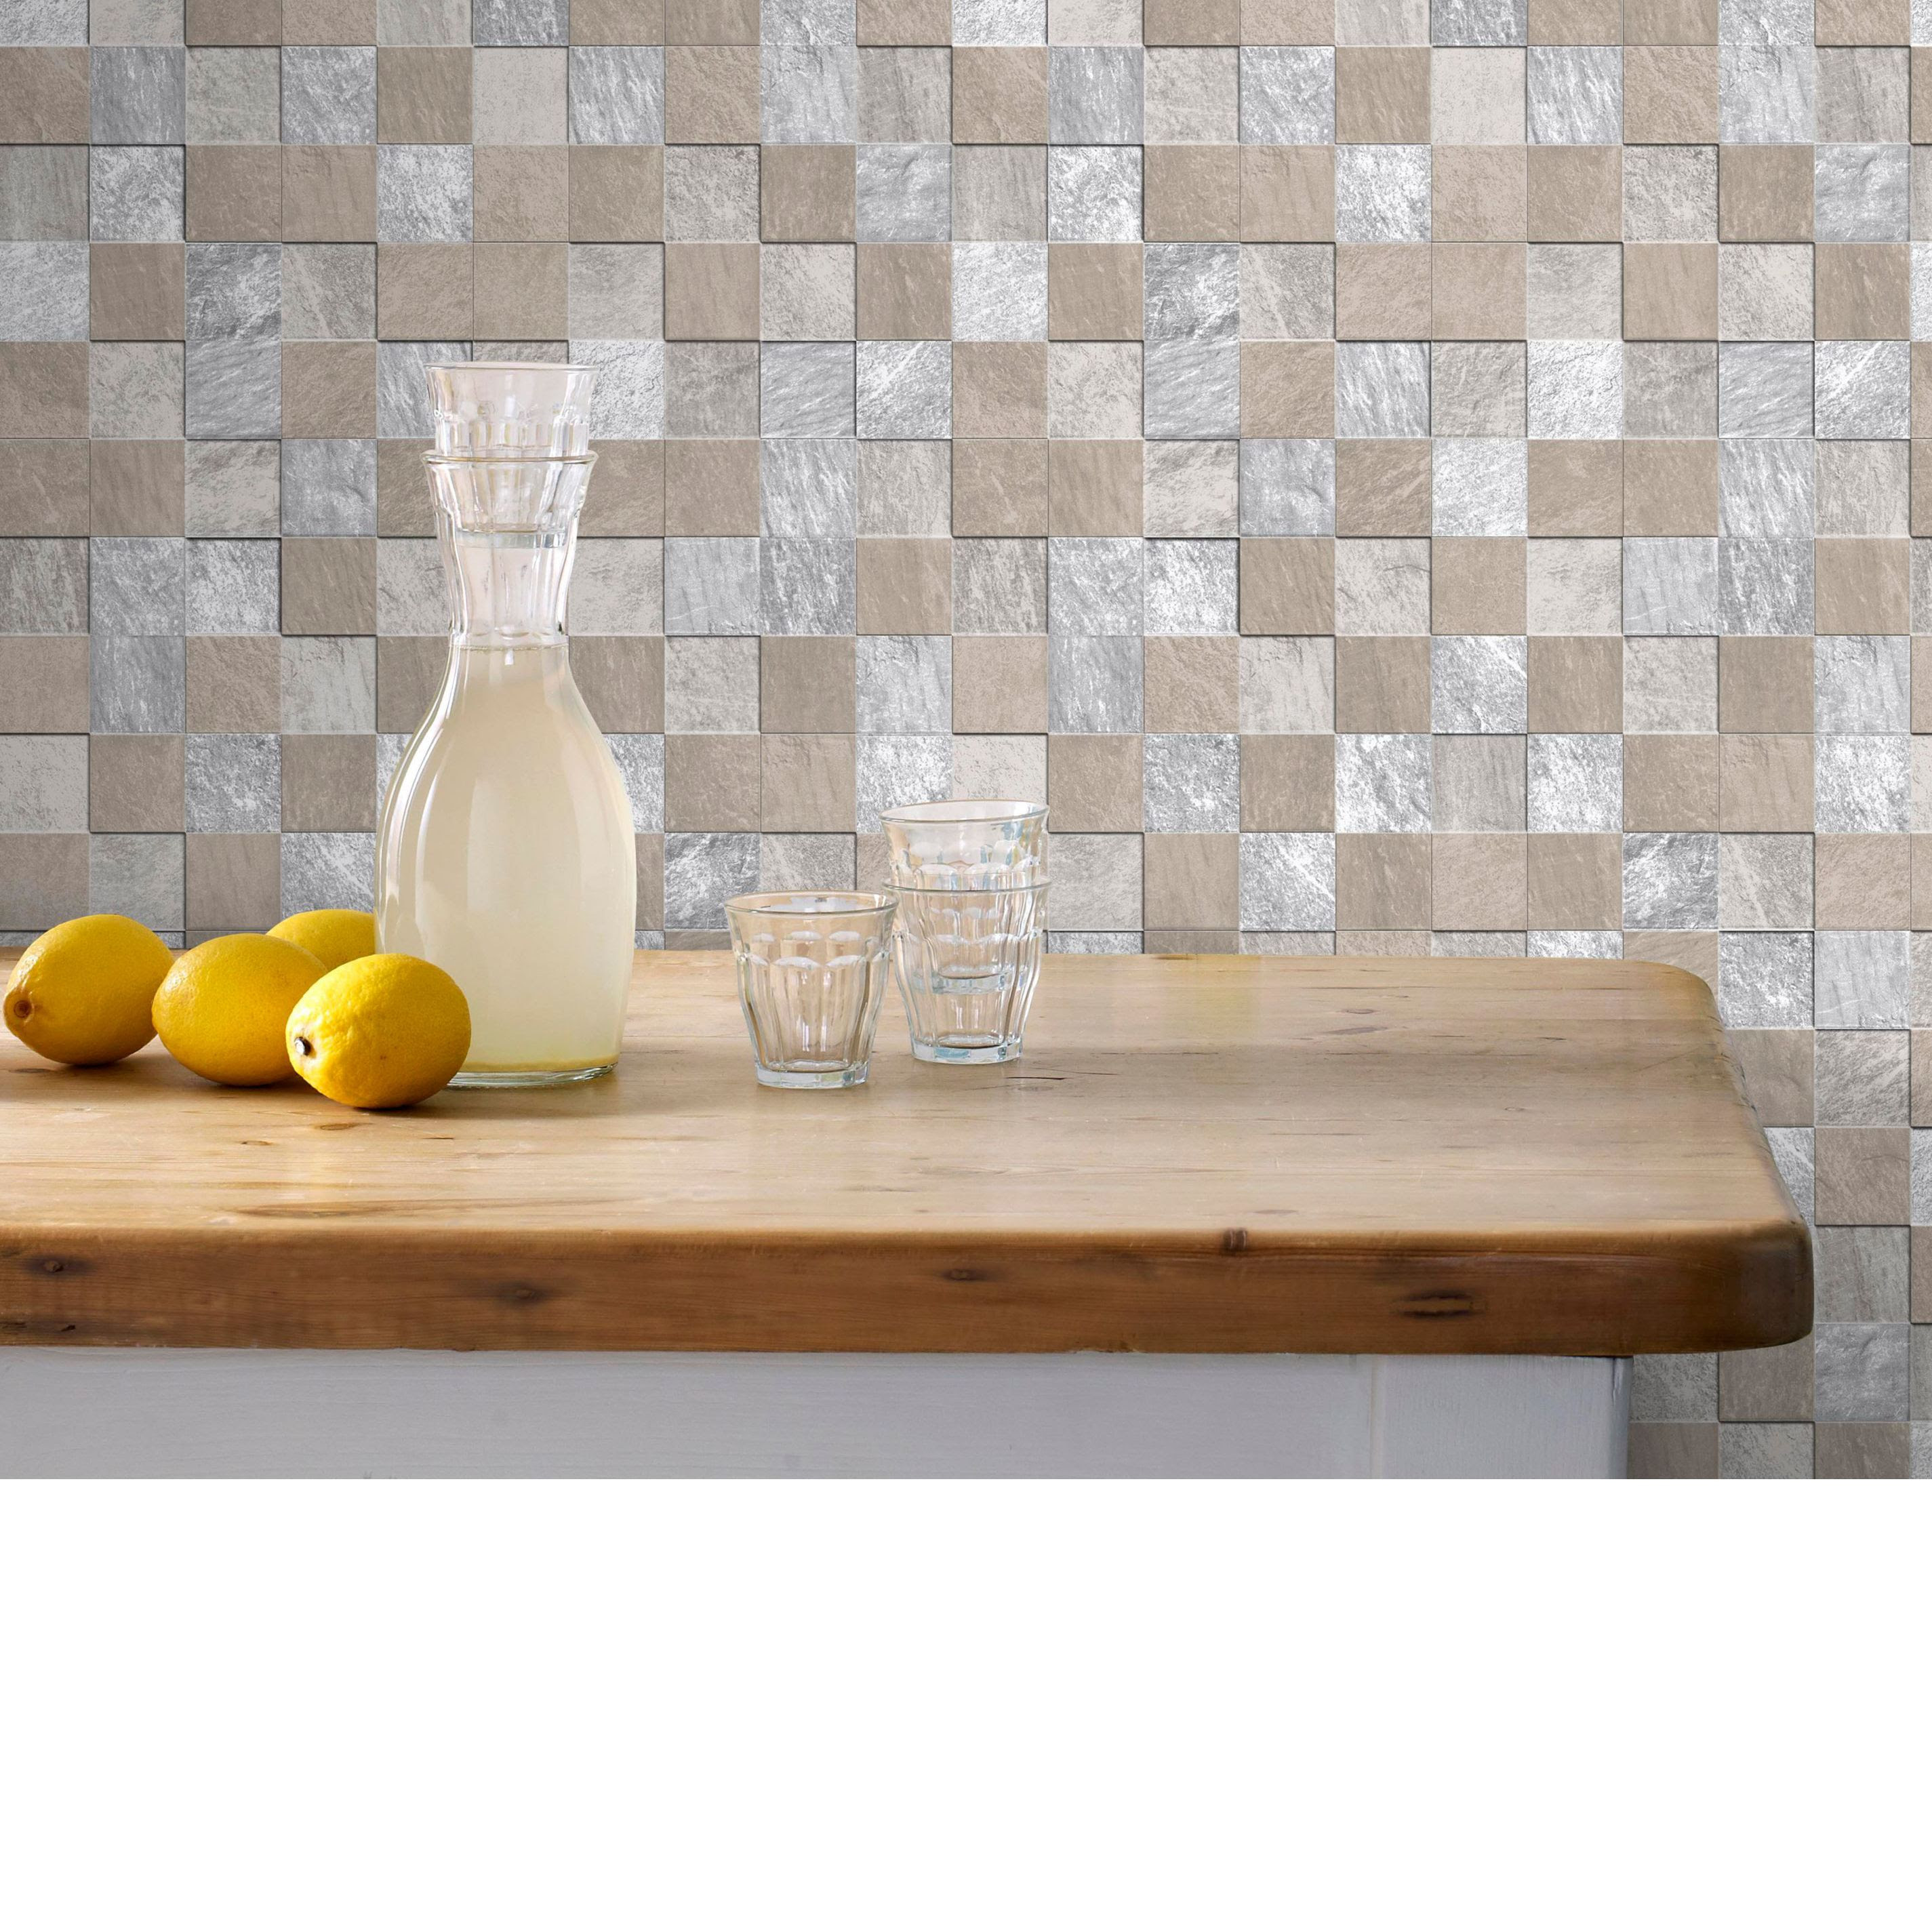 Buyer's guide to wallpaper | Help & Ideas | DIY at B&Q